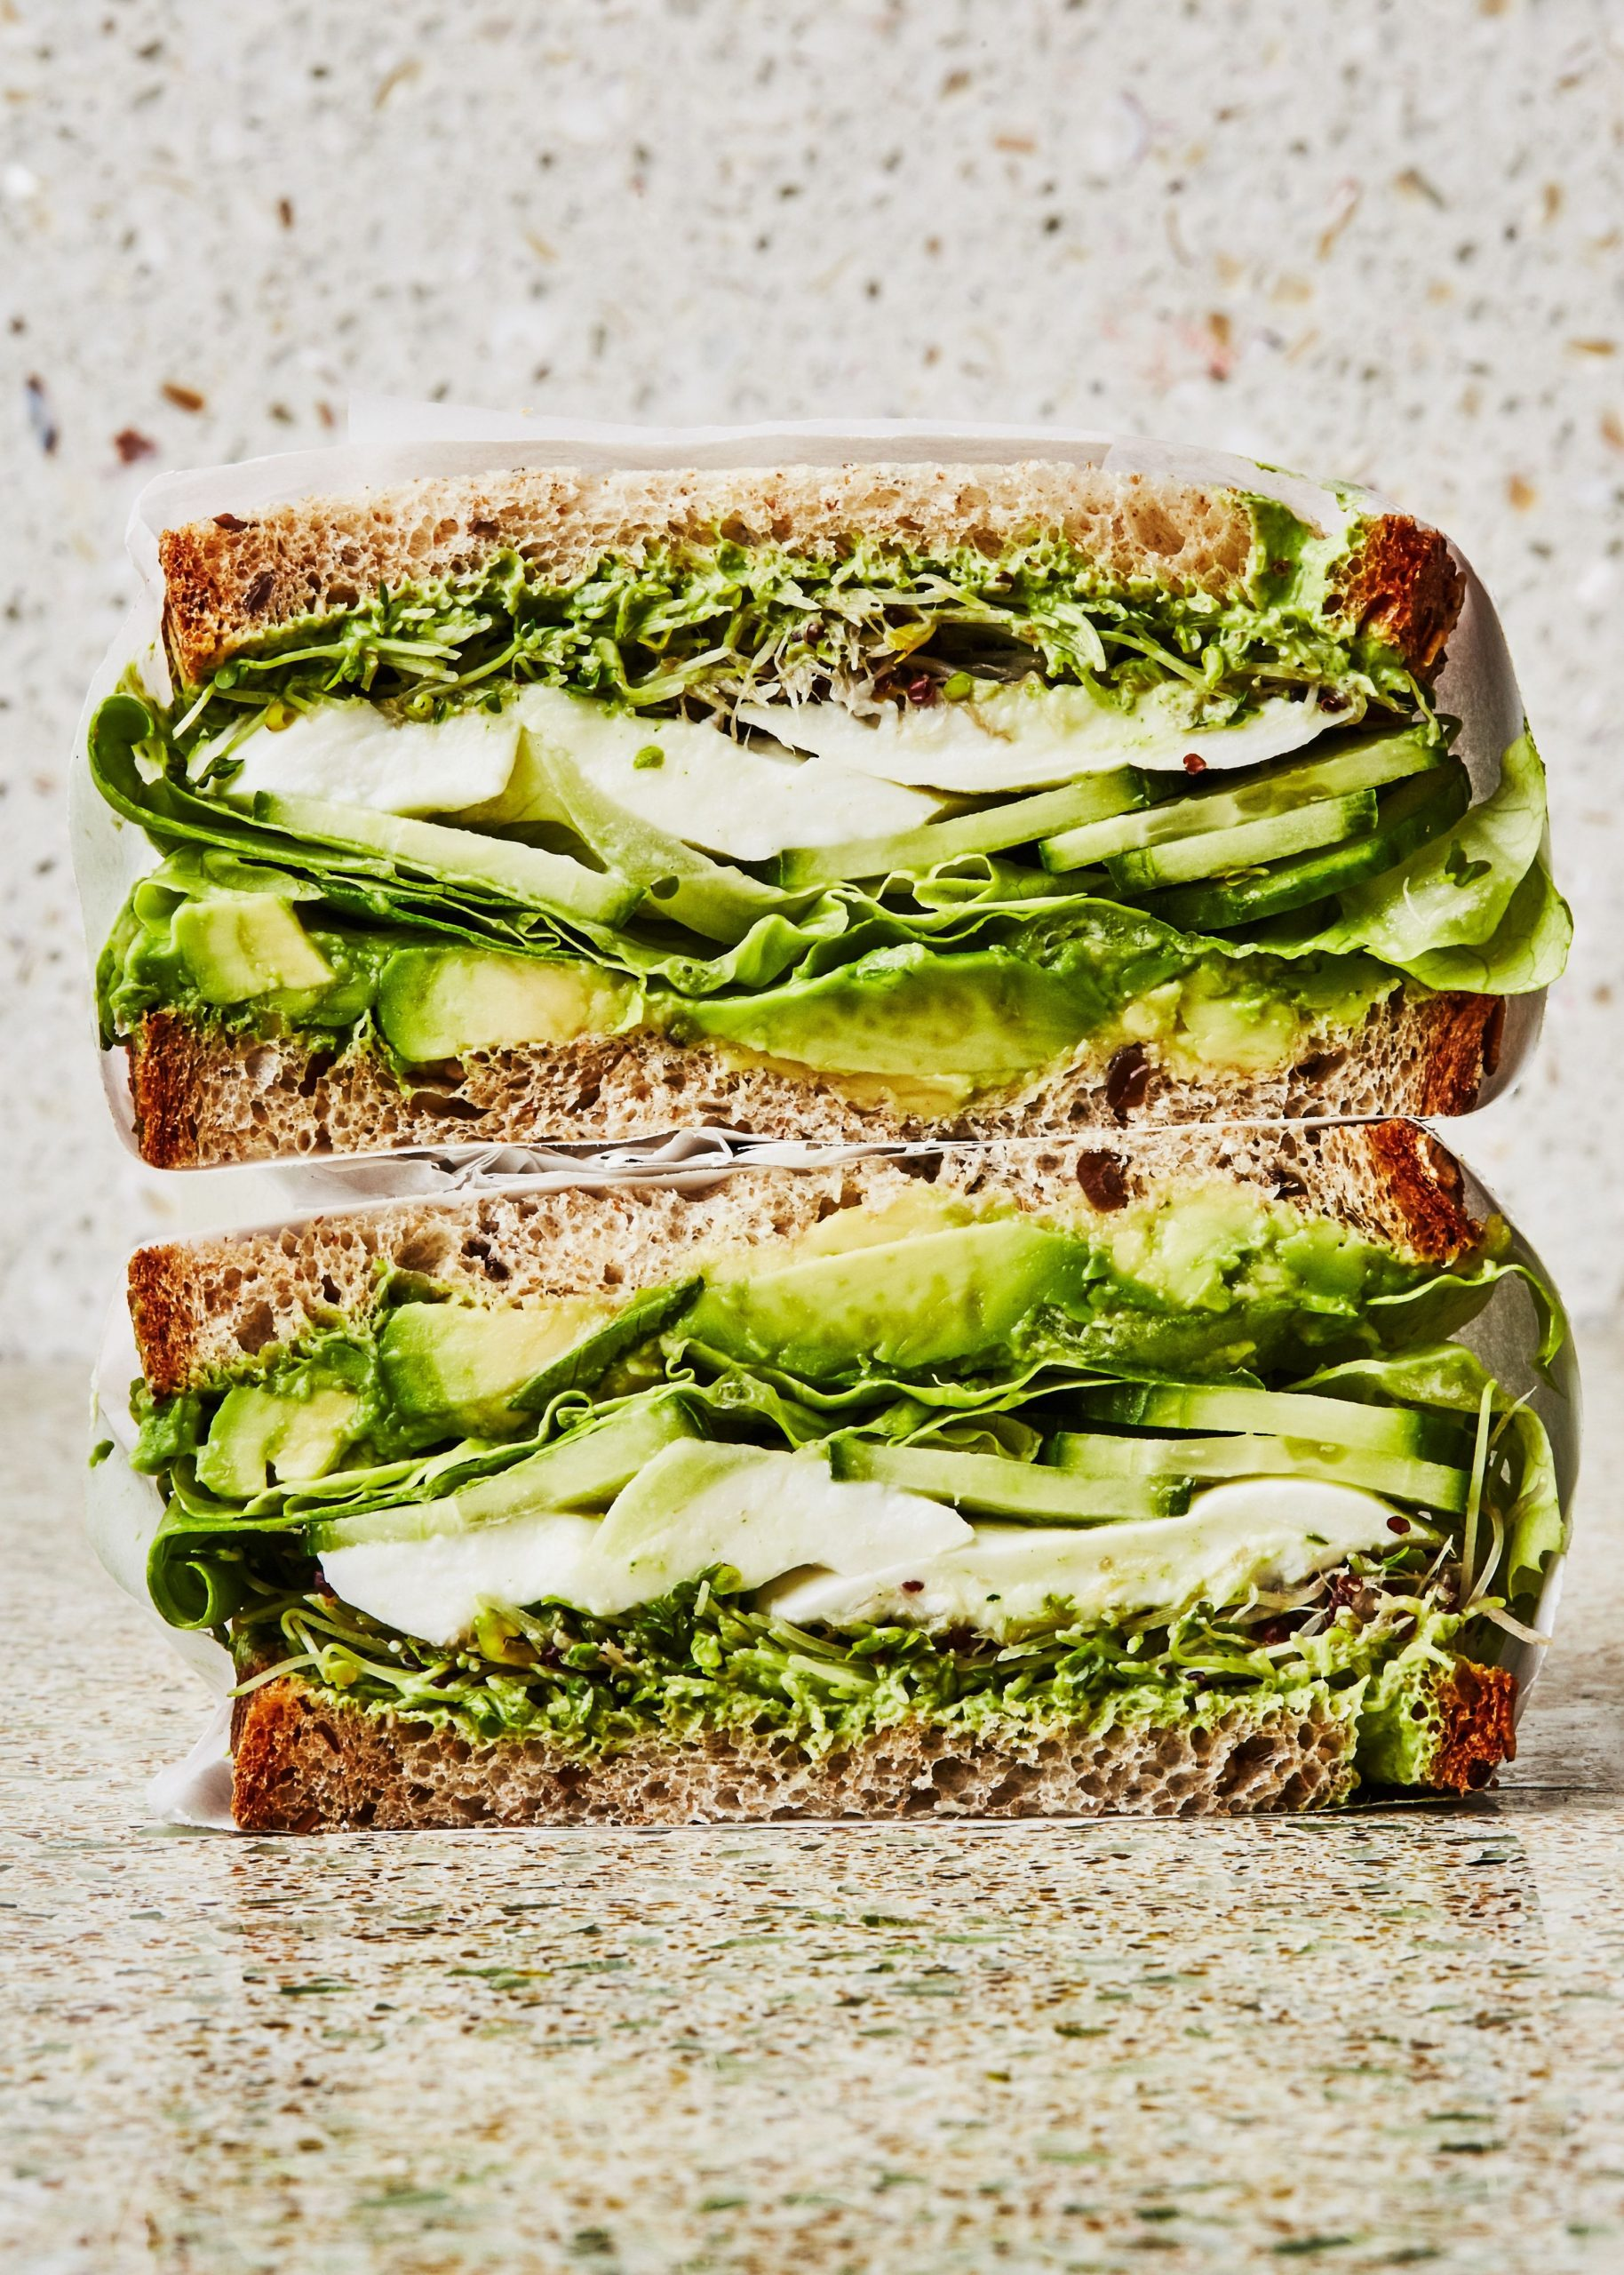 Green Goddess Crunch Sandwich - Sandwich Recipes Epicurious